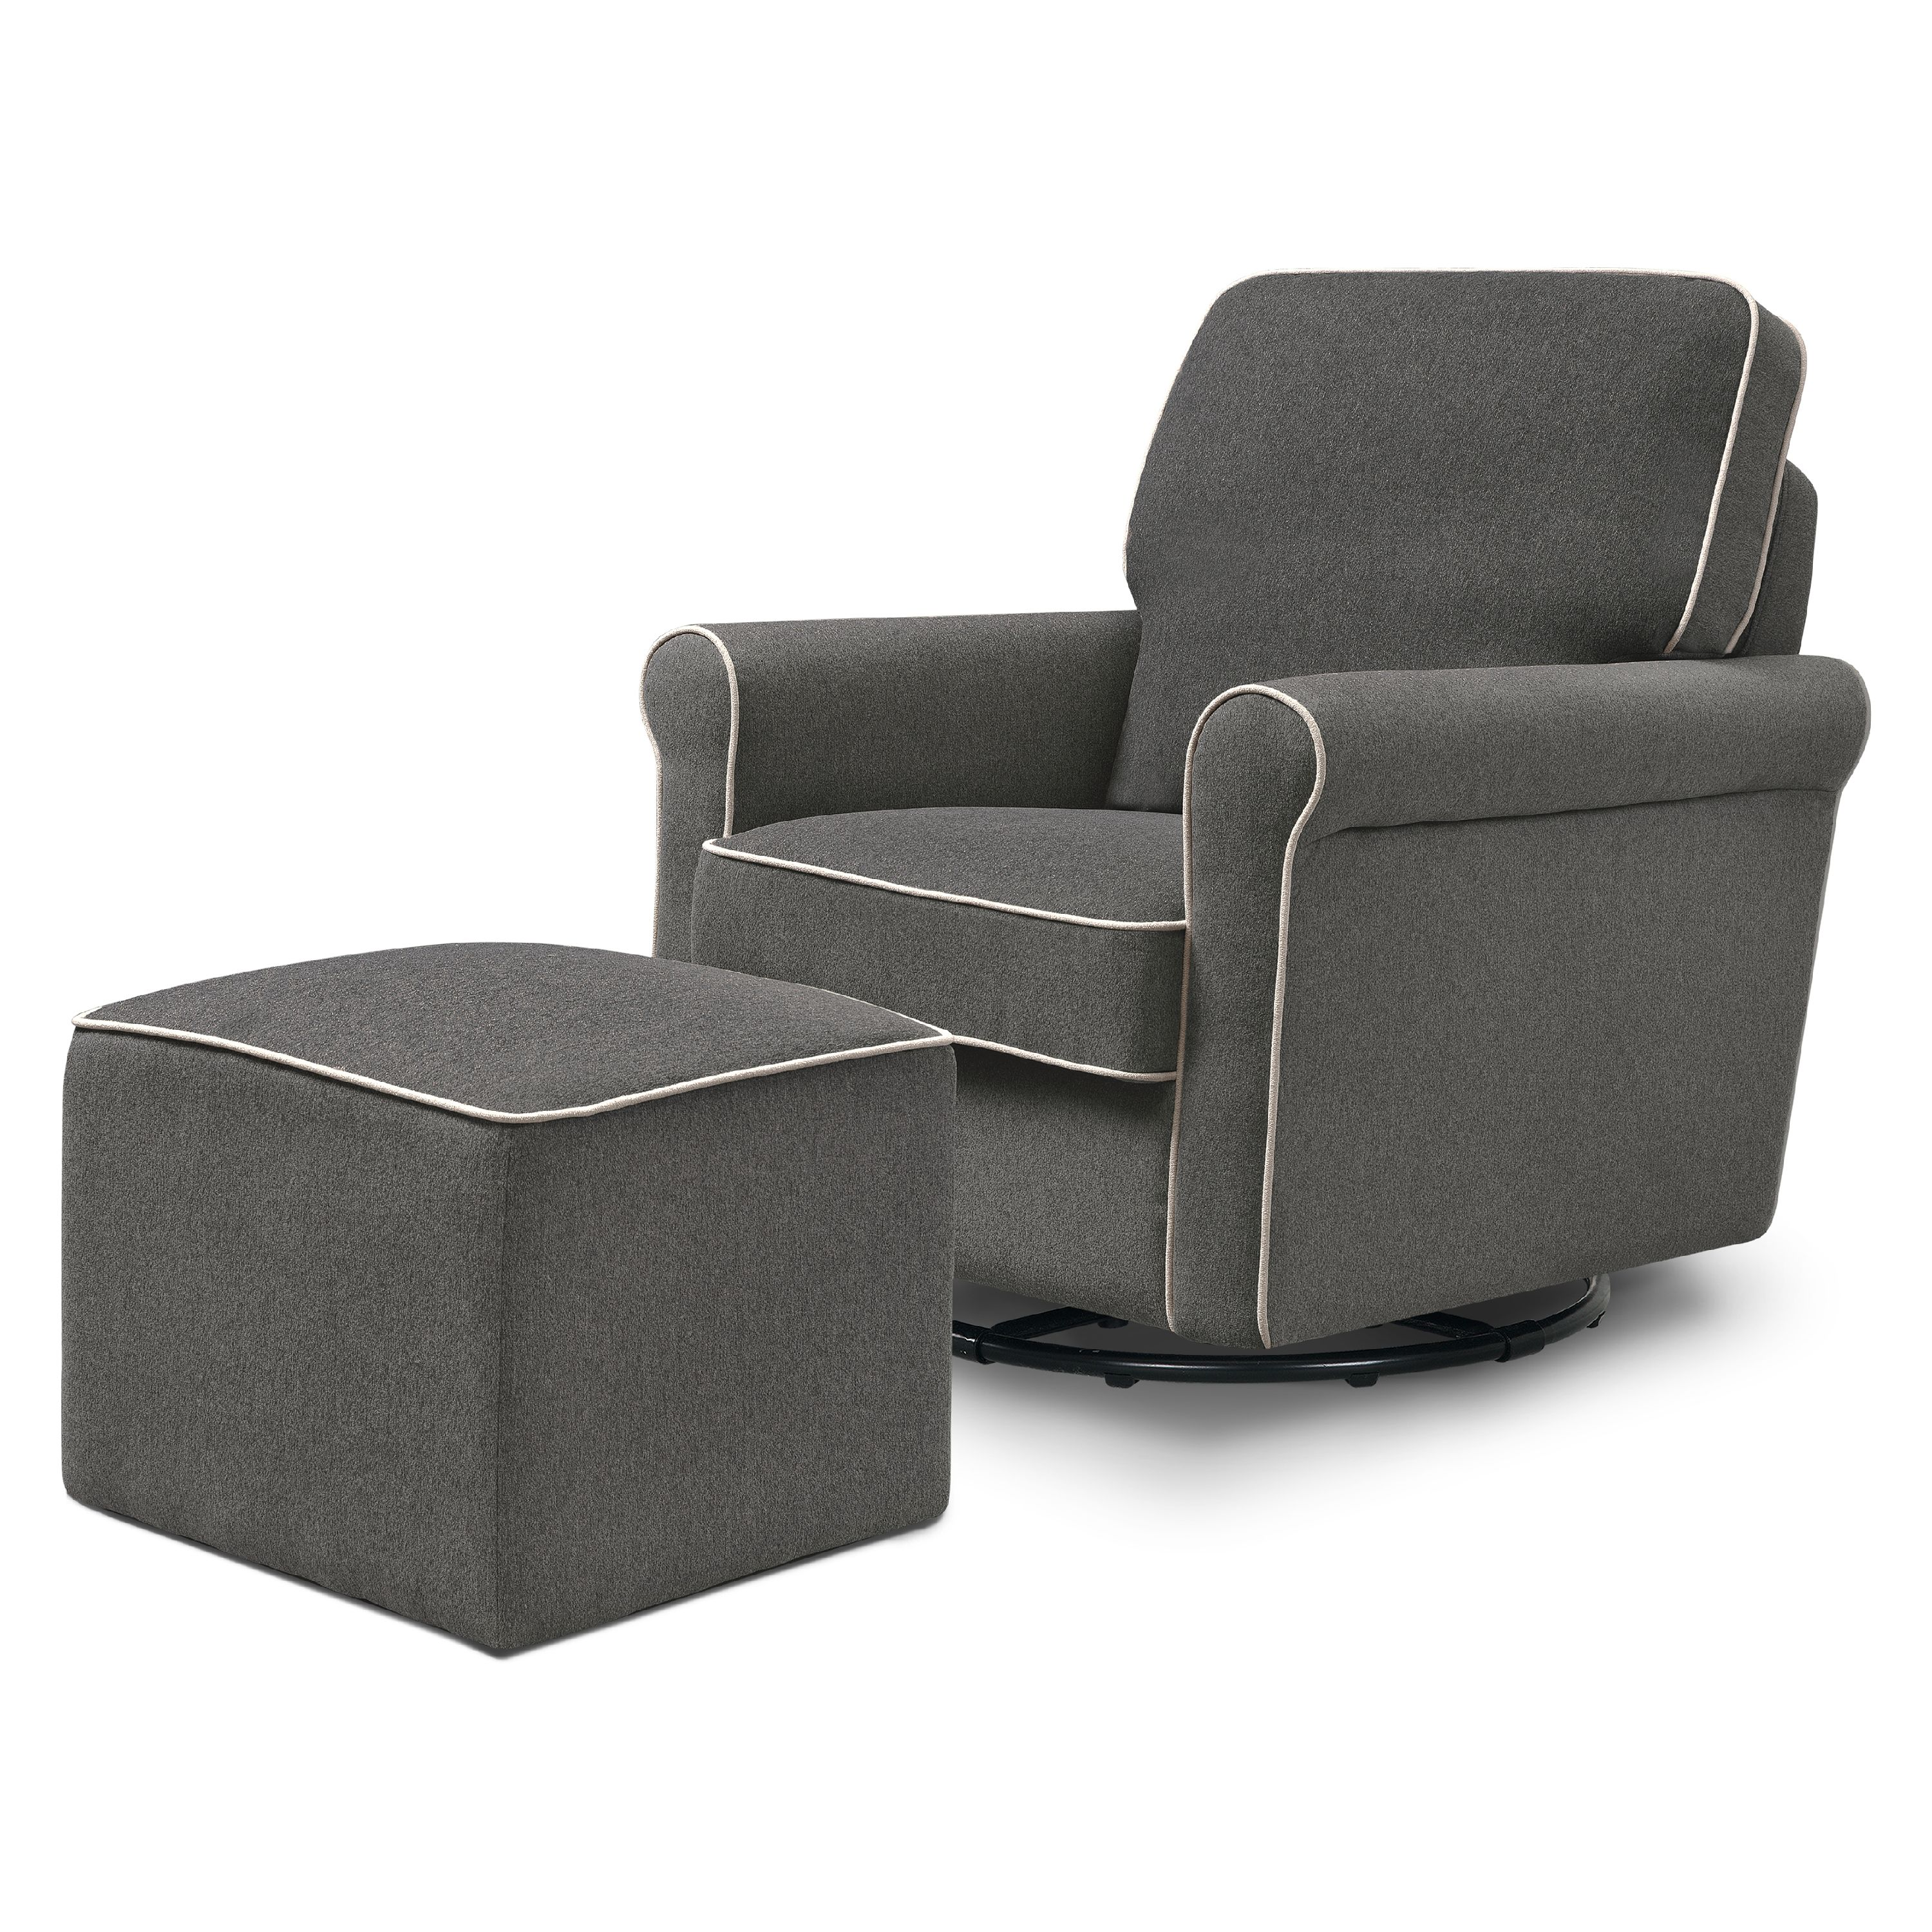 DaVinci Maya Swivel Glider and Ottoman in Dark Grey with Cream Piping by DaVinci Baby